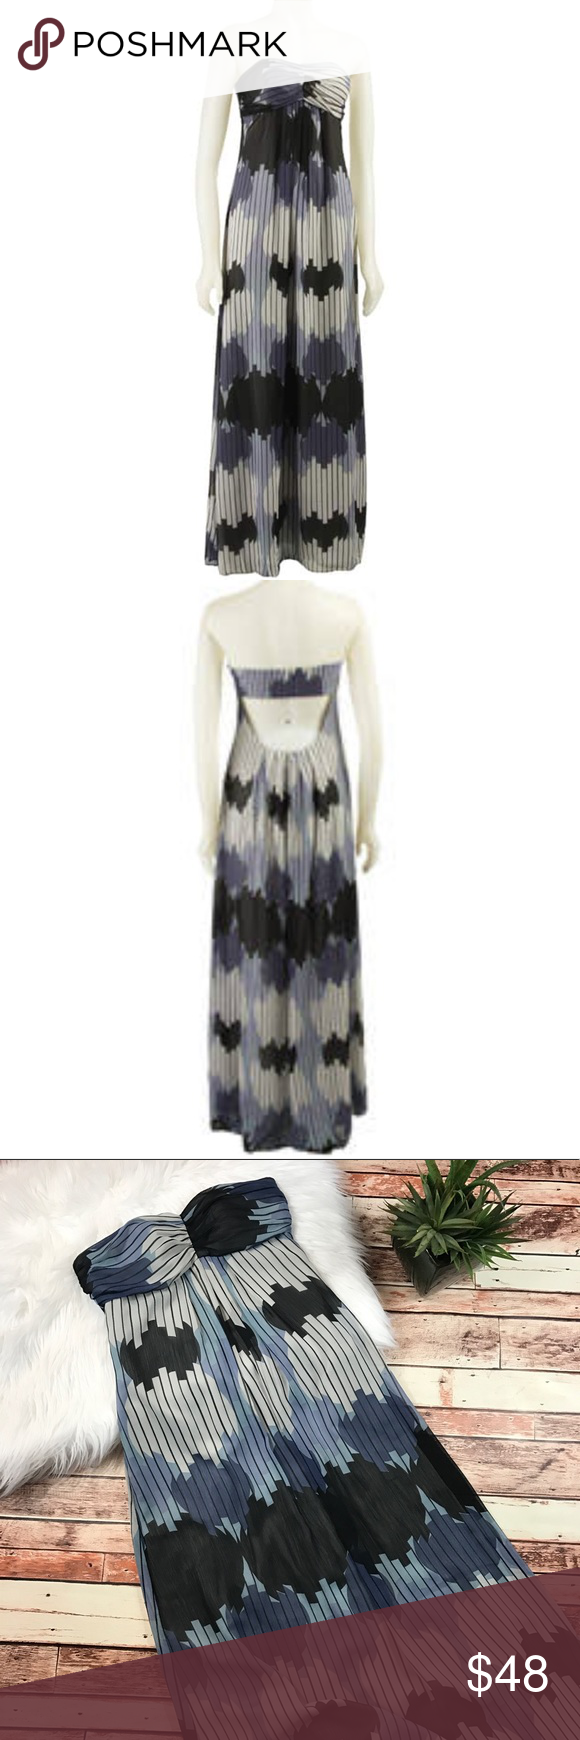 Max And Cleo Blue Printed Strapless Maxi Dress Size 4 In